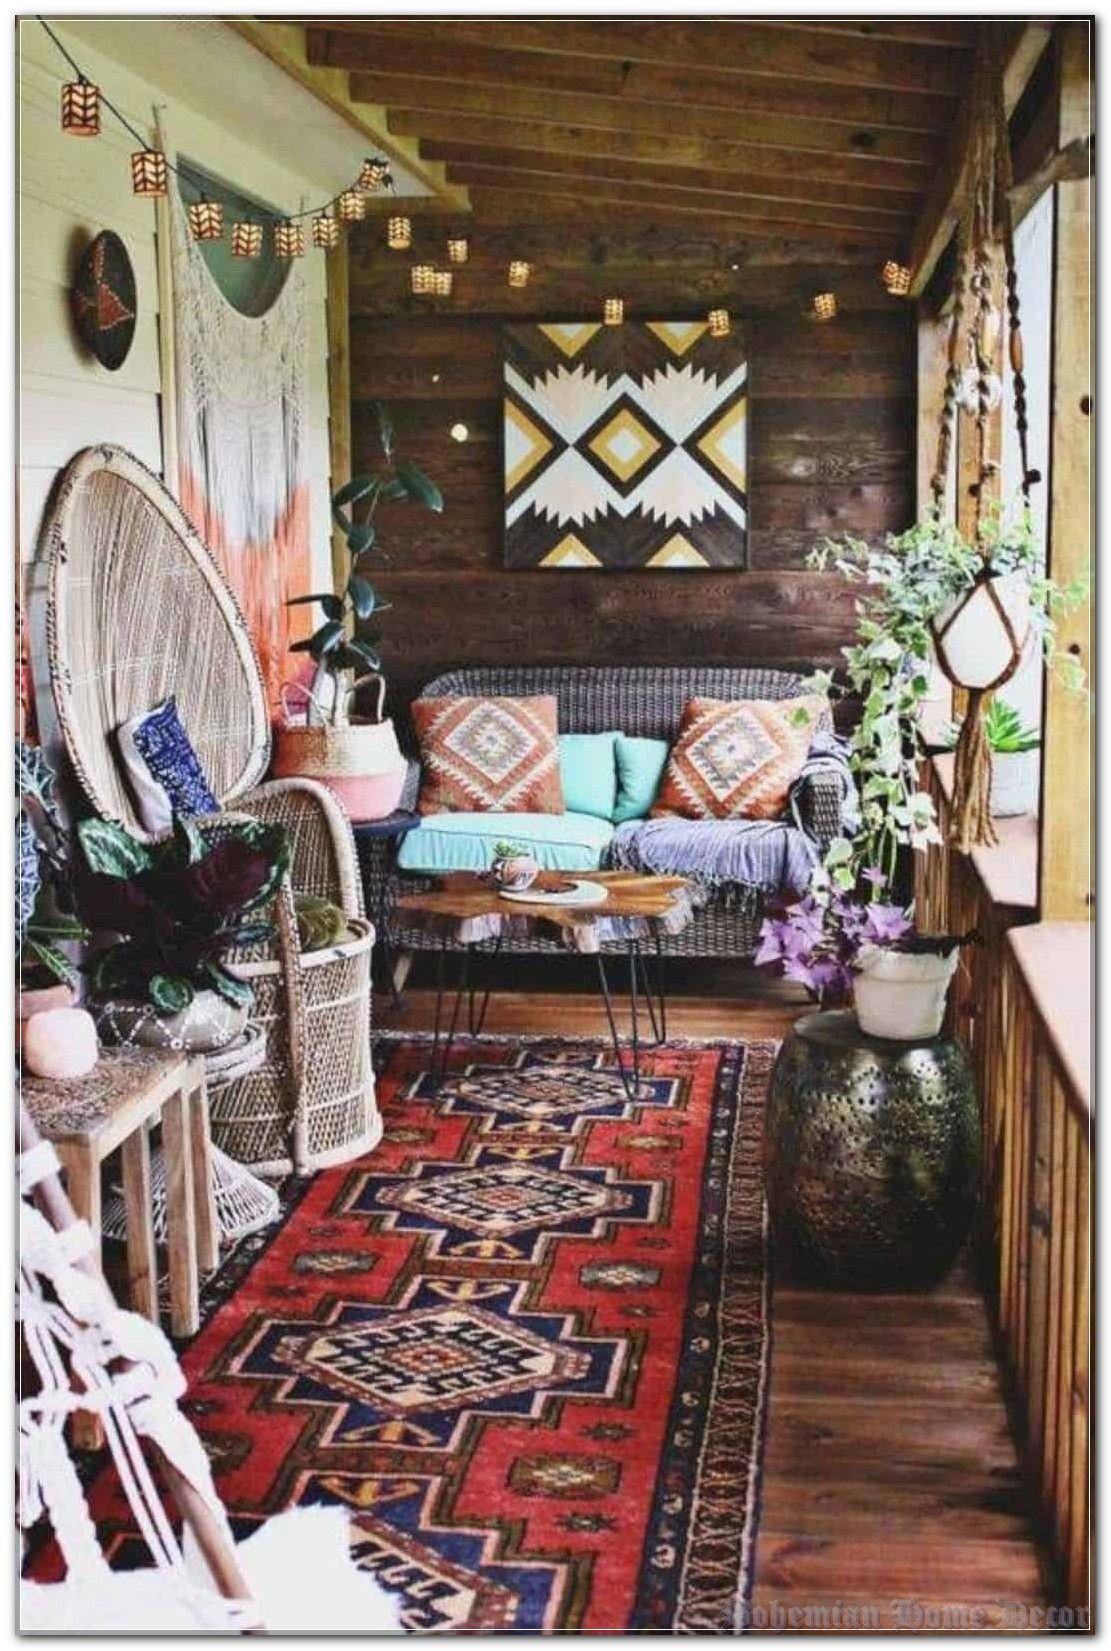 Need More Inspiration With Bohemian Home Decor? Read this!